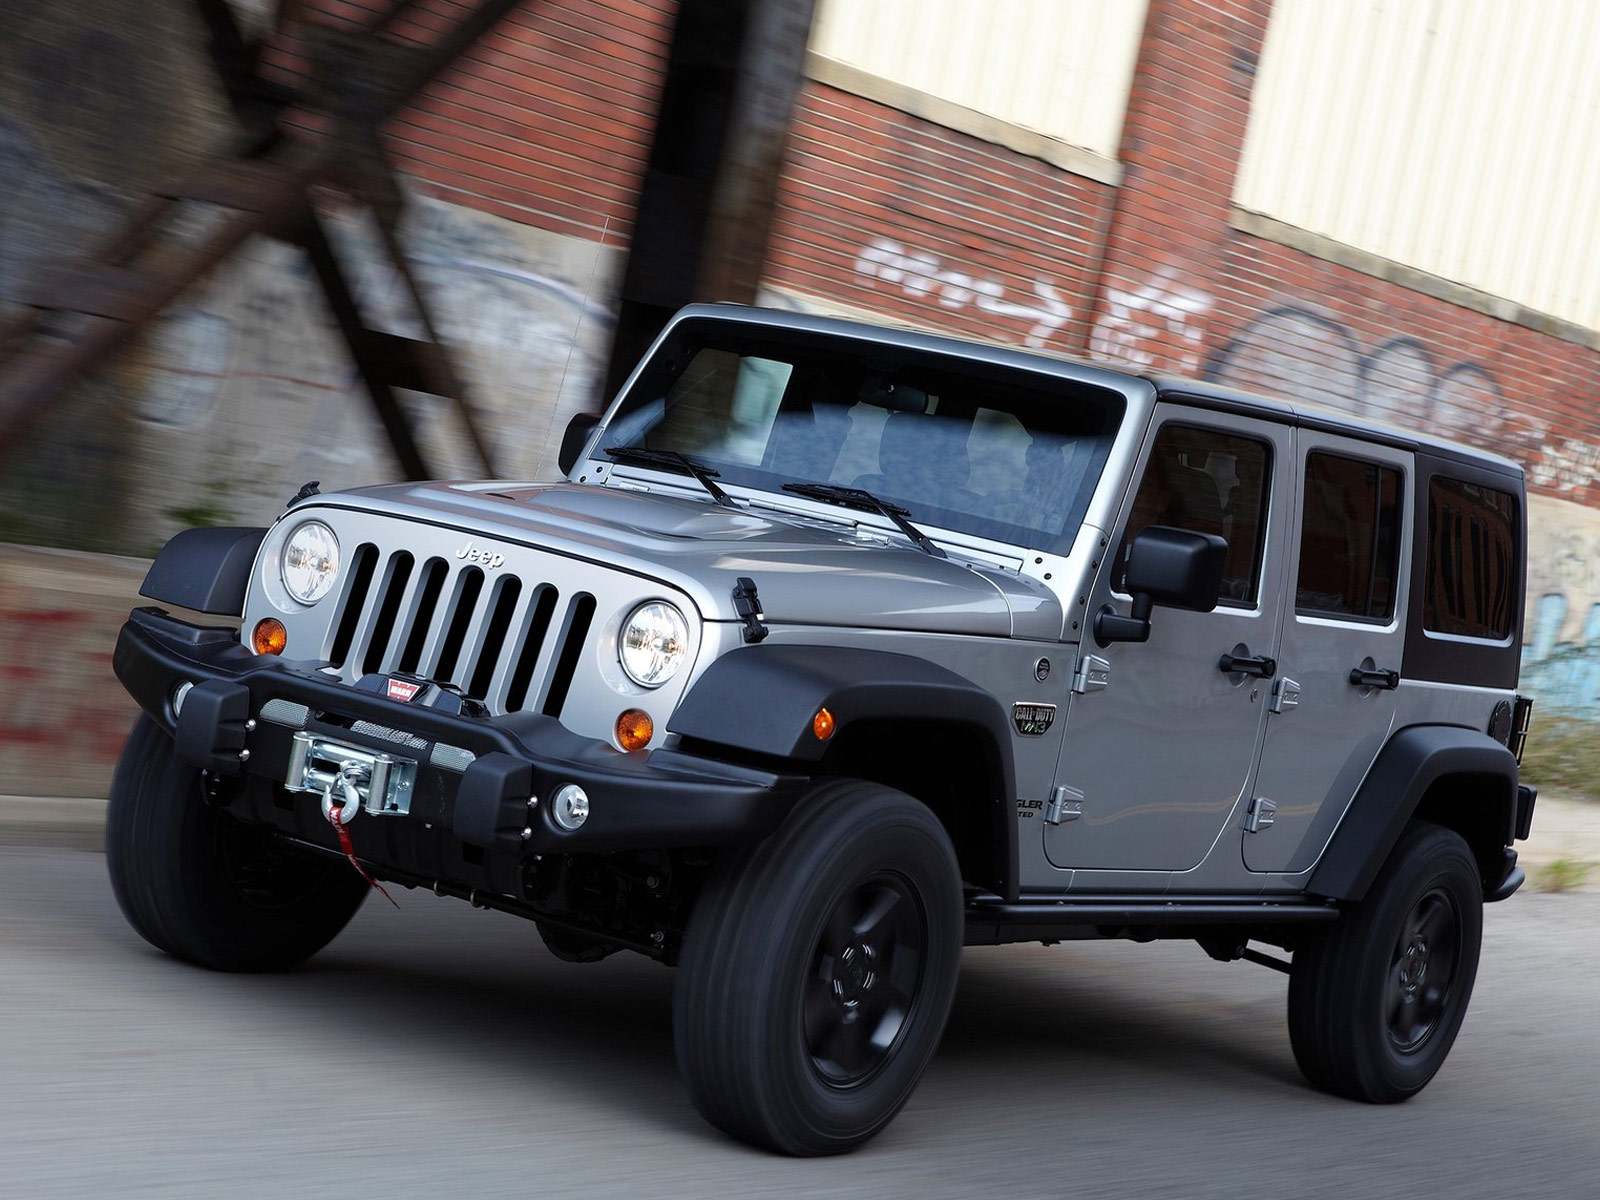 2012 Jeep Wrangler Call Of Duty Mw3 Pictures